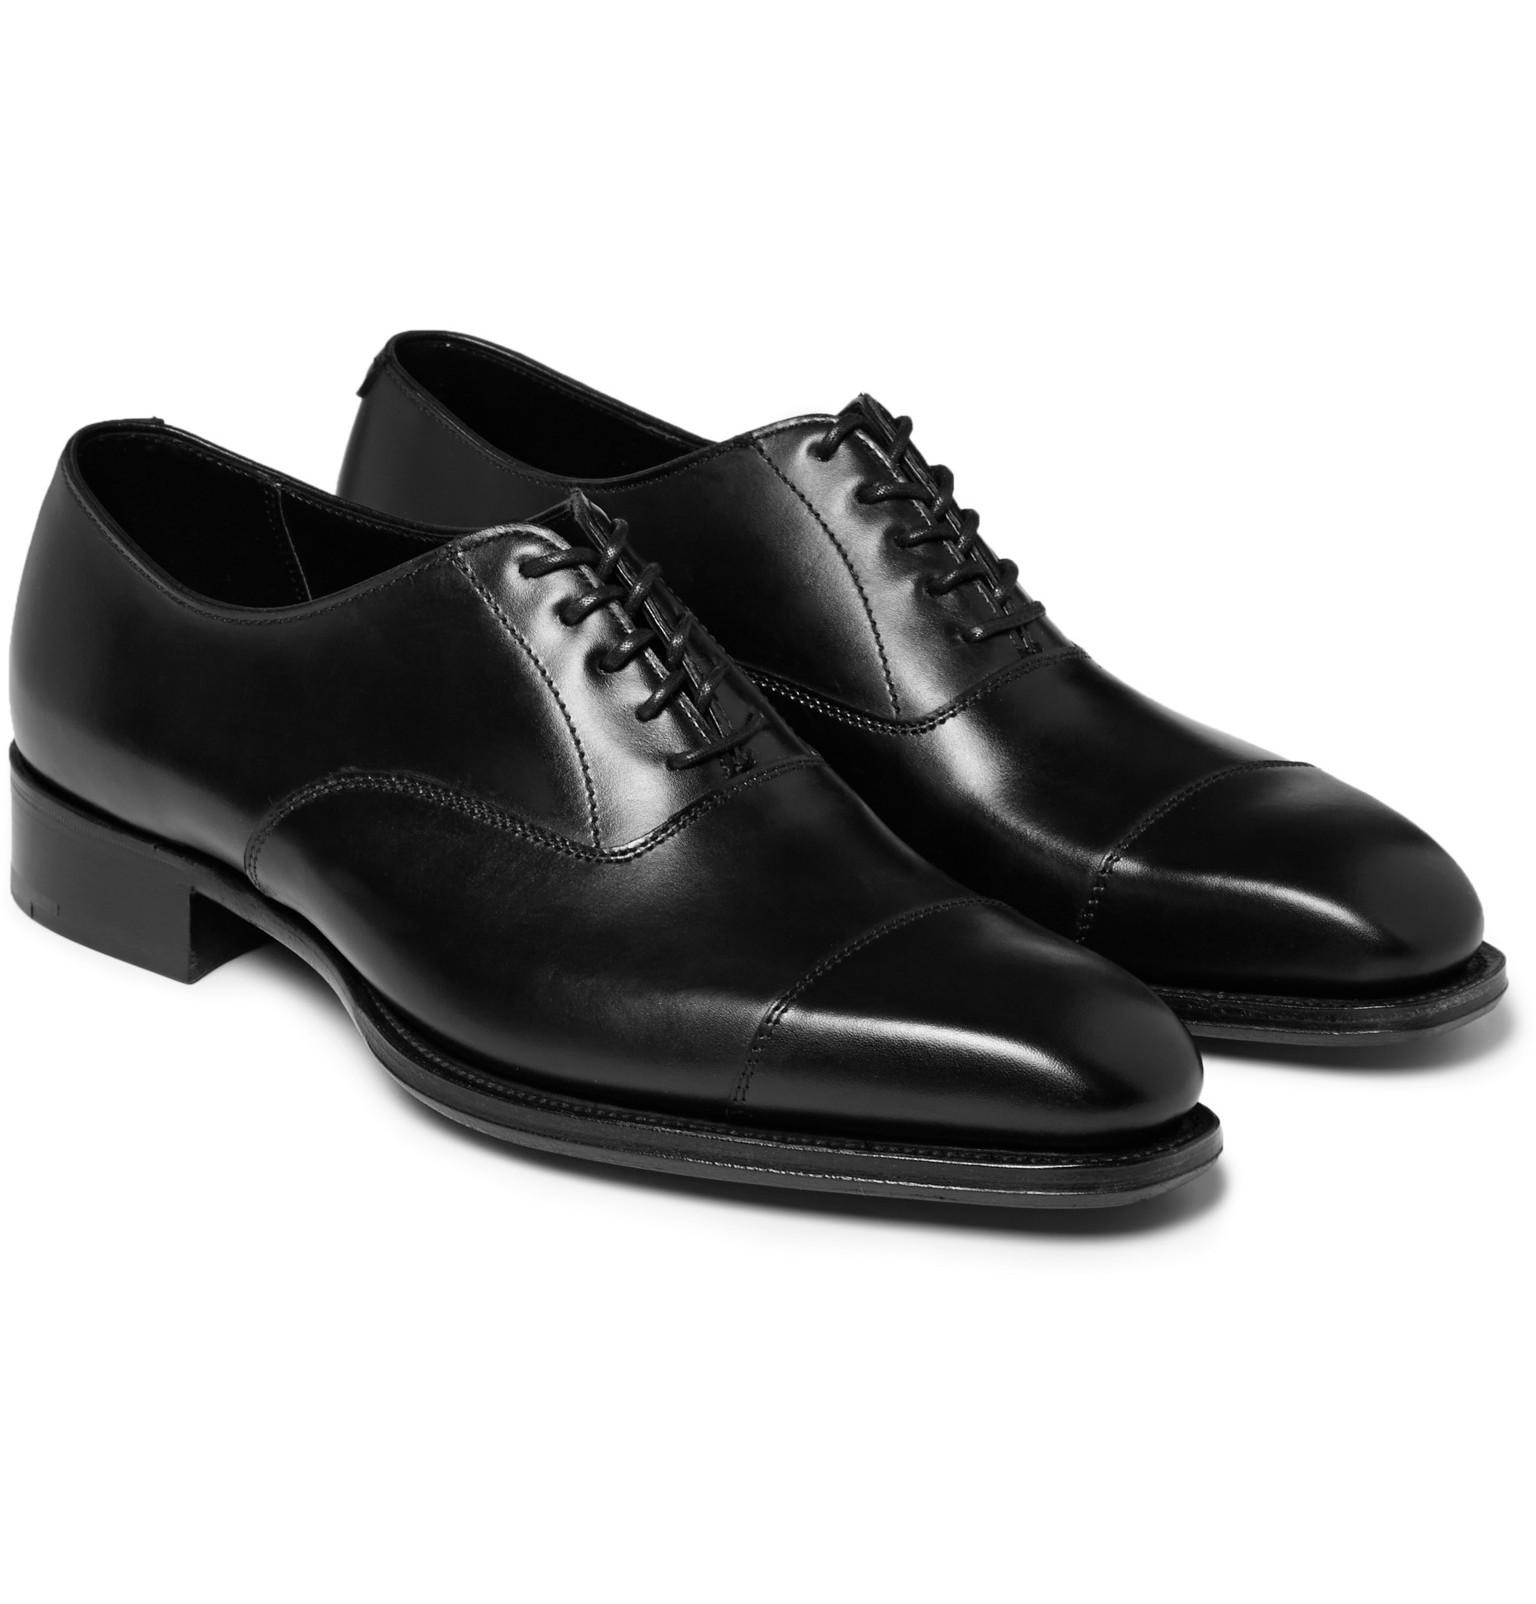 discount great deals wiki Kingsman + George Cleverley Patent-Leather Oxford Shoes wiki cheap price for sale top quality lowest price sale online 3ipnjlL6